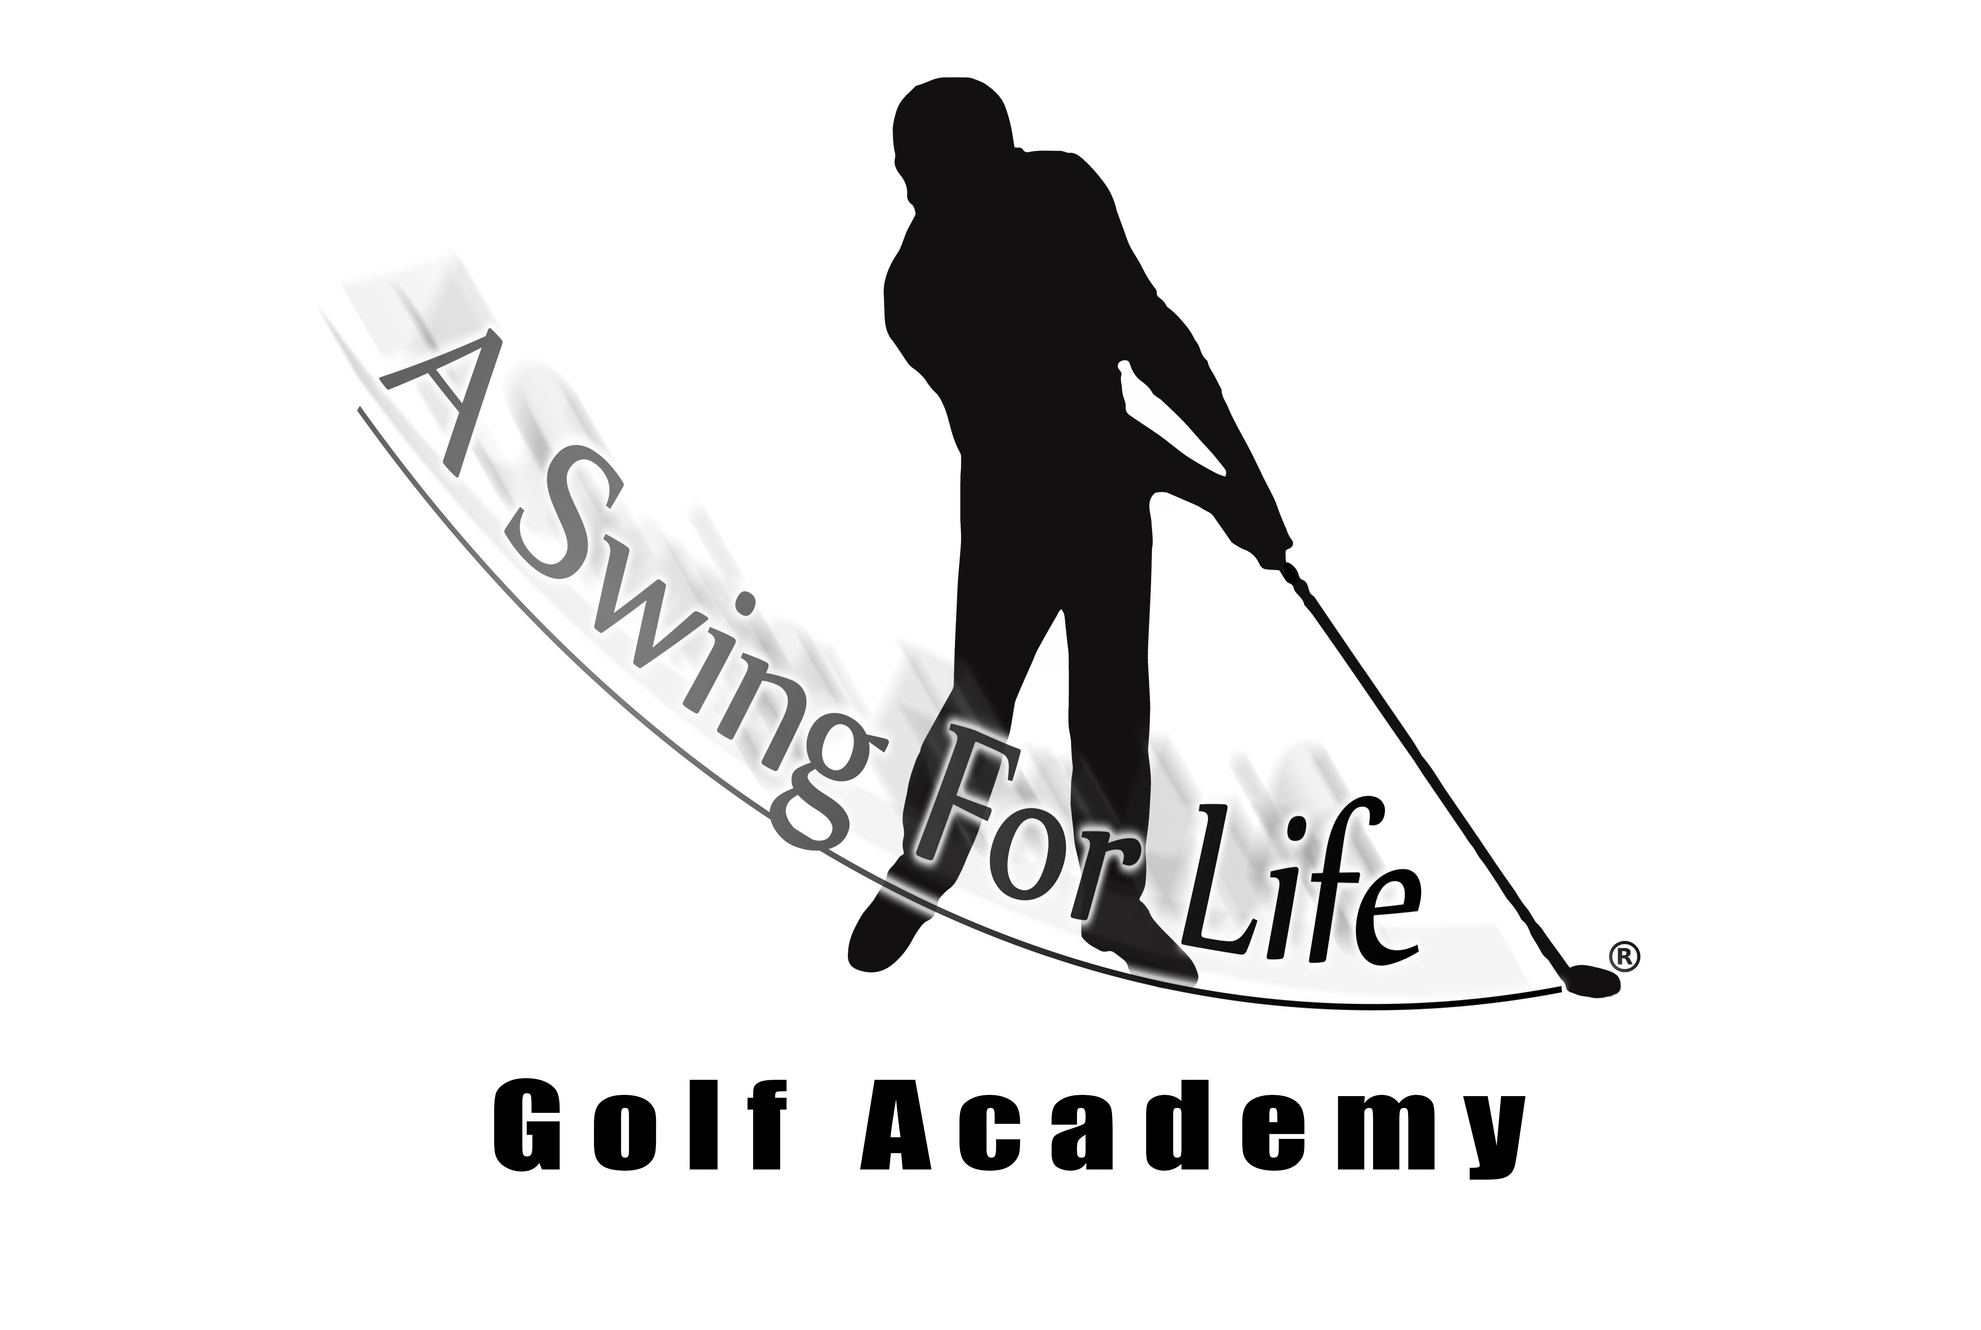 A Swing For Life Golf Academy Students